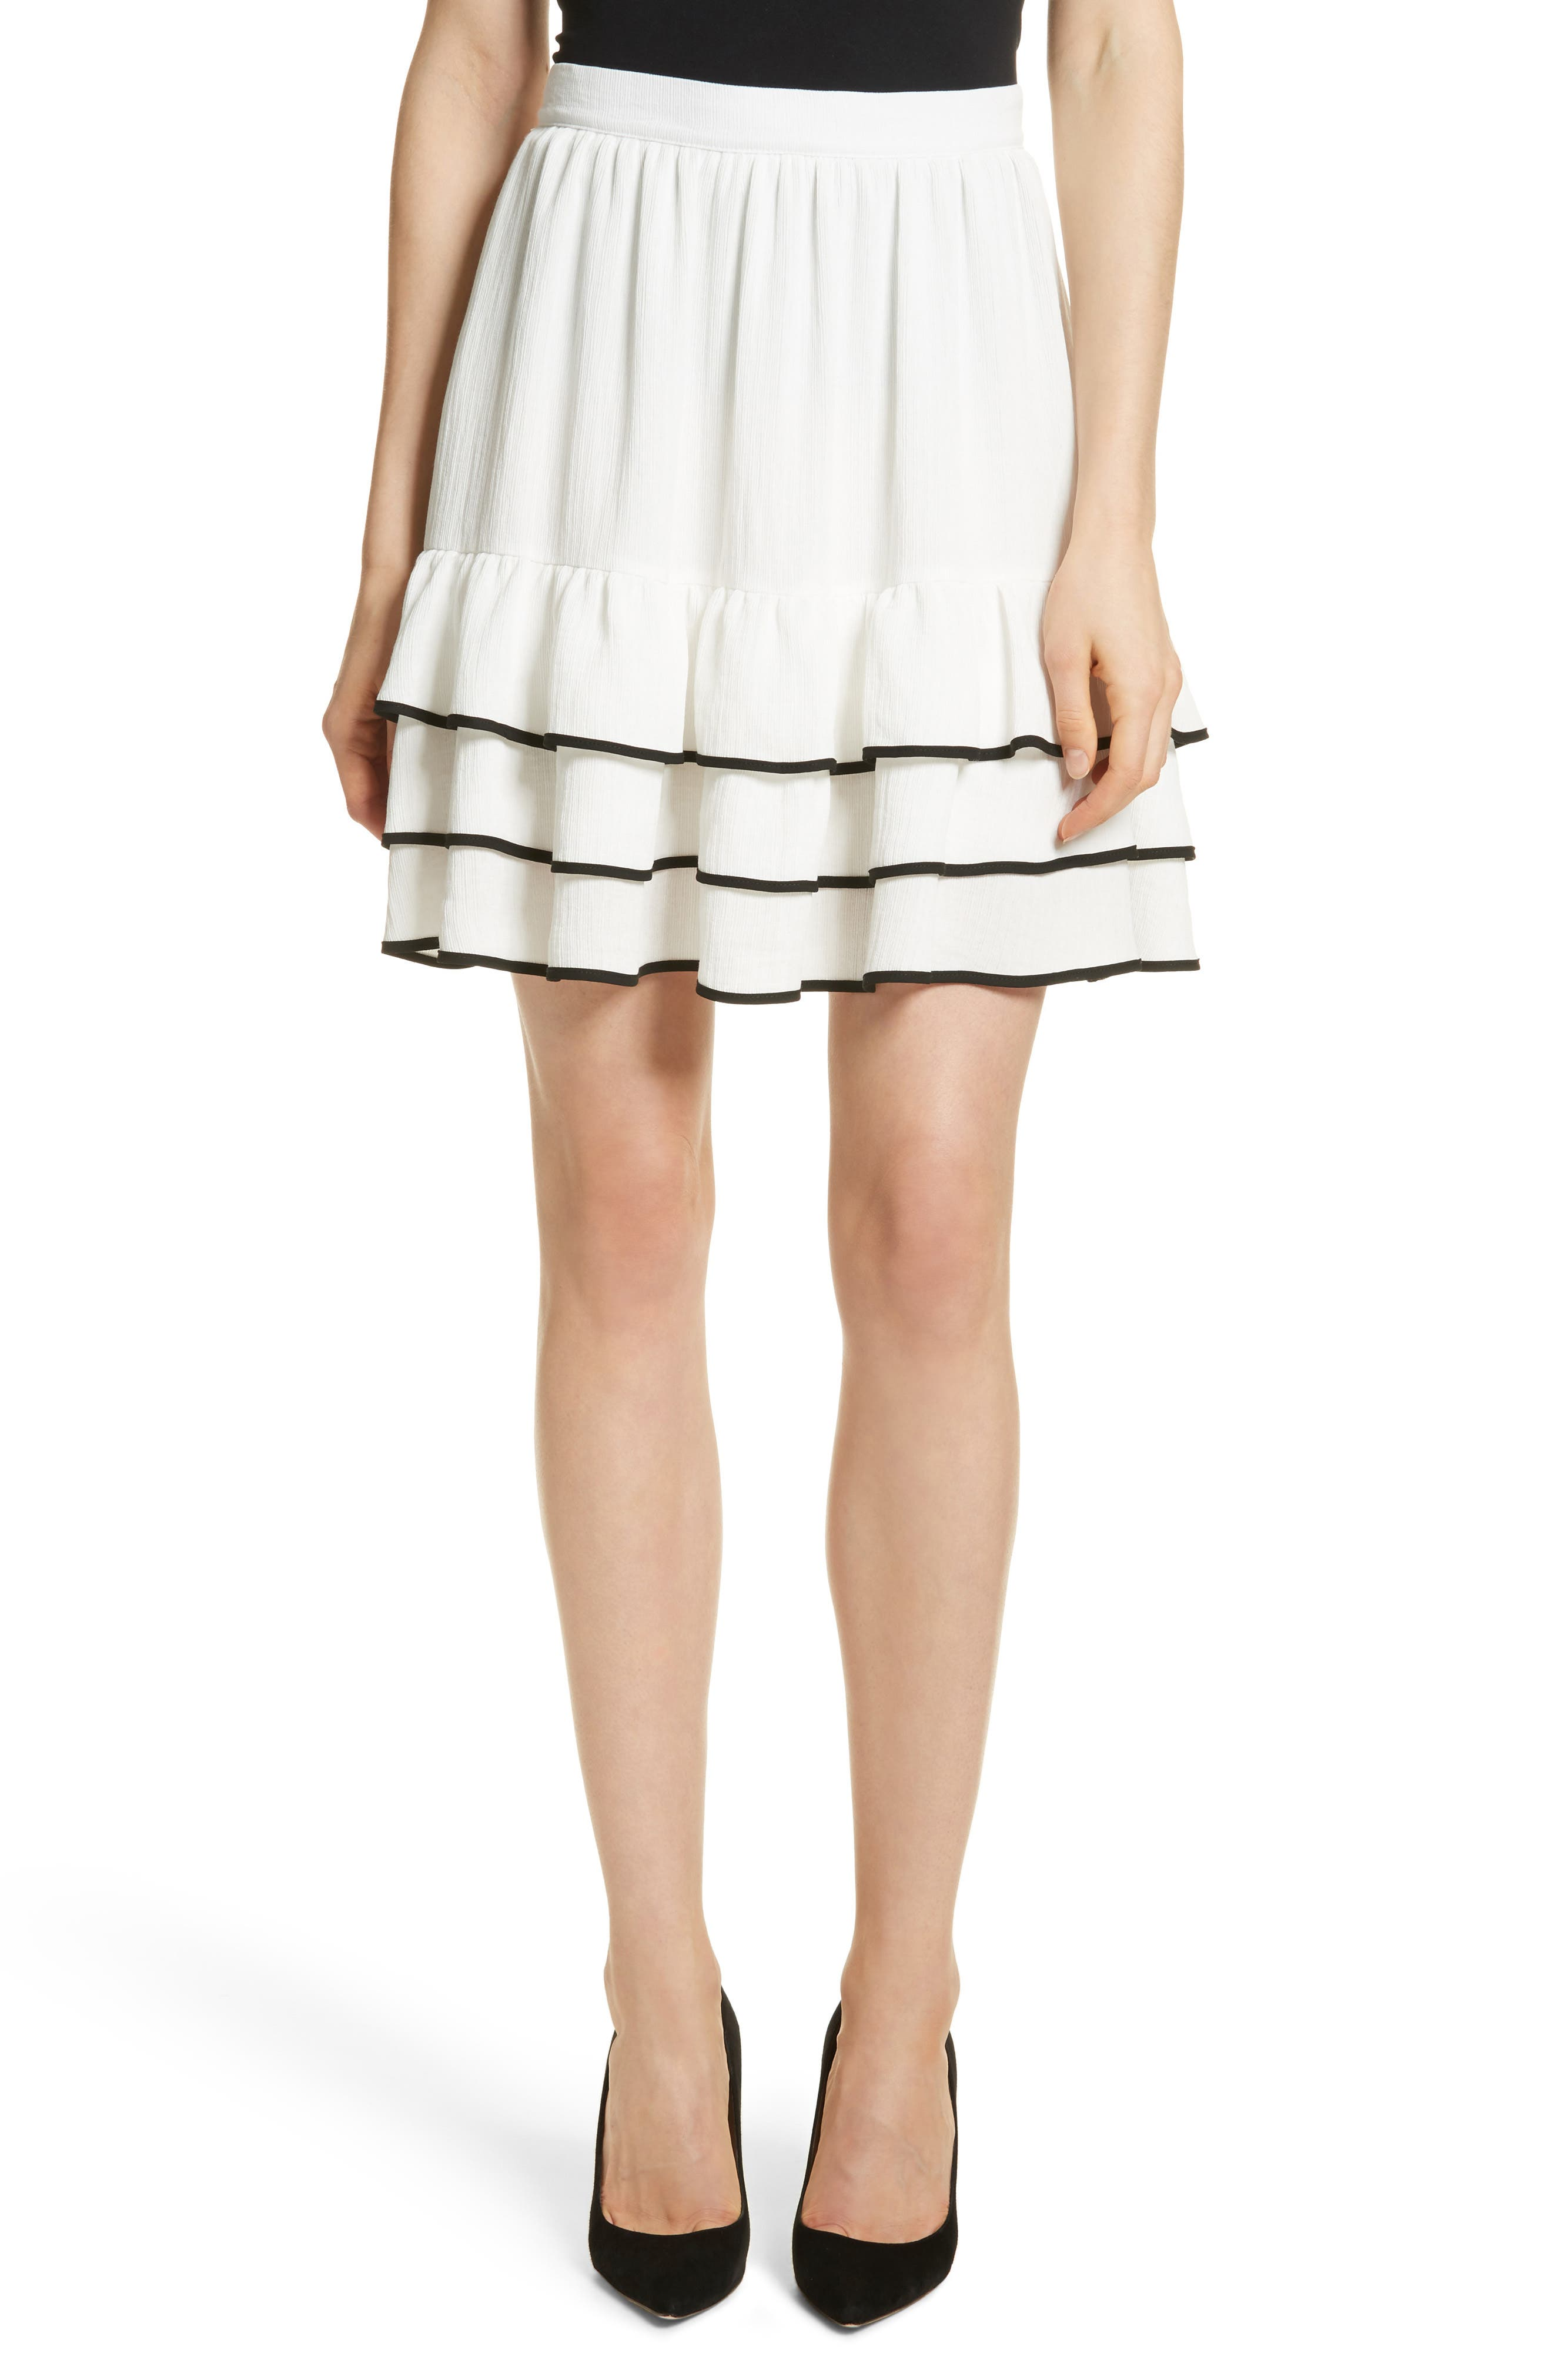 Prose & Poetry Carice Ruffle Miniskirt,                         Main,                         color, 101